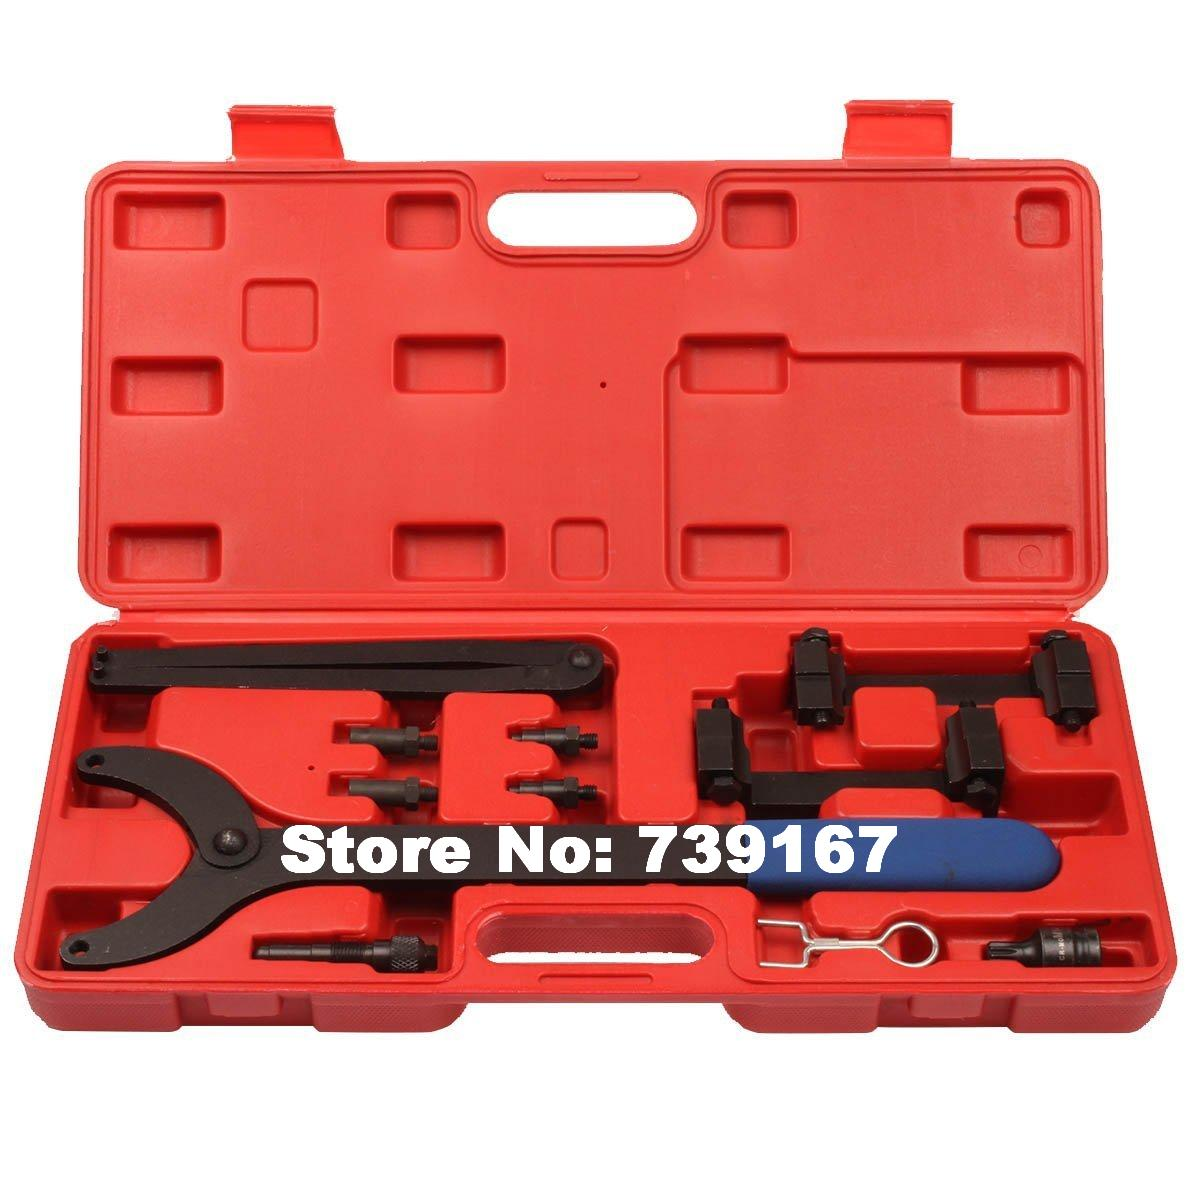 Auto Engine Timing Camshaft Locking Alignment Removal Repair Garage Tools For Audi A2 A3 A4 A6 A8 2.4/3.2L V6 FSI ST0169 utool engine camshaft crankshaft locking alignment timing tool kit for audi a2 a3 a4 a6 a8 2 4 3 2l v6 fsi t40070 t40069 t10172